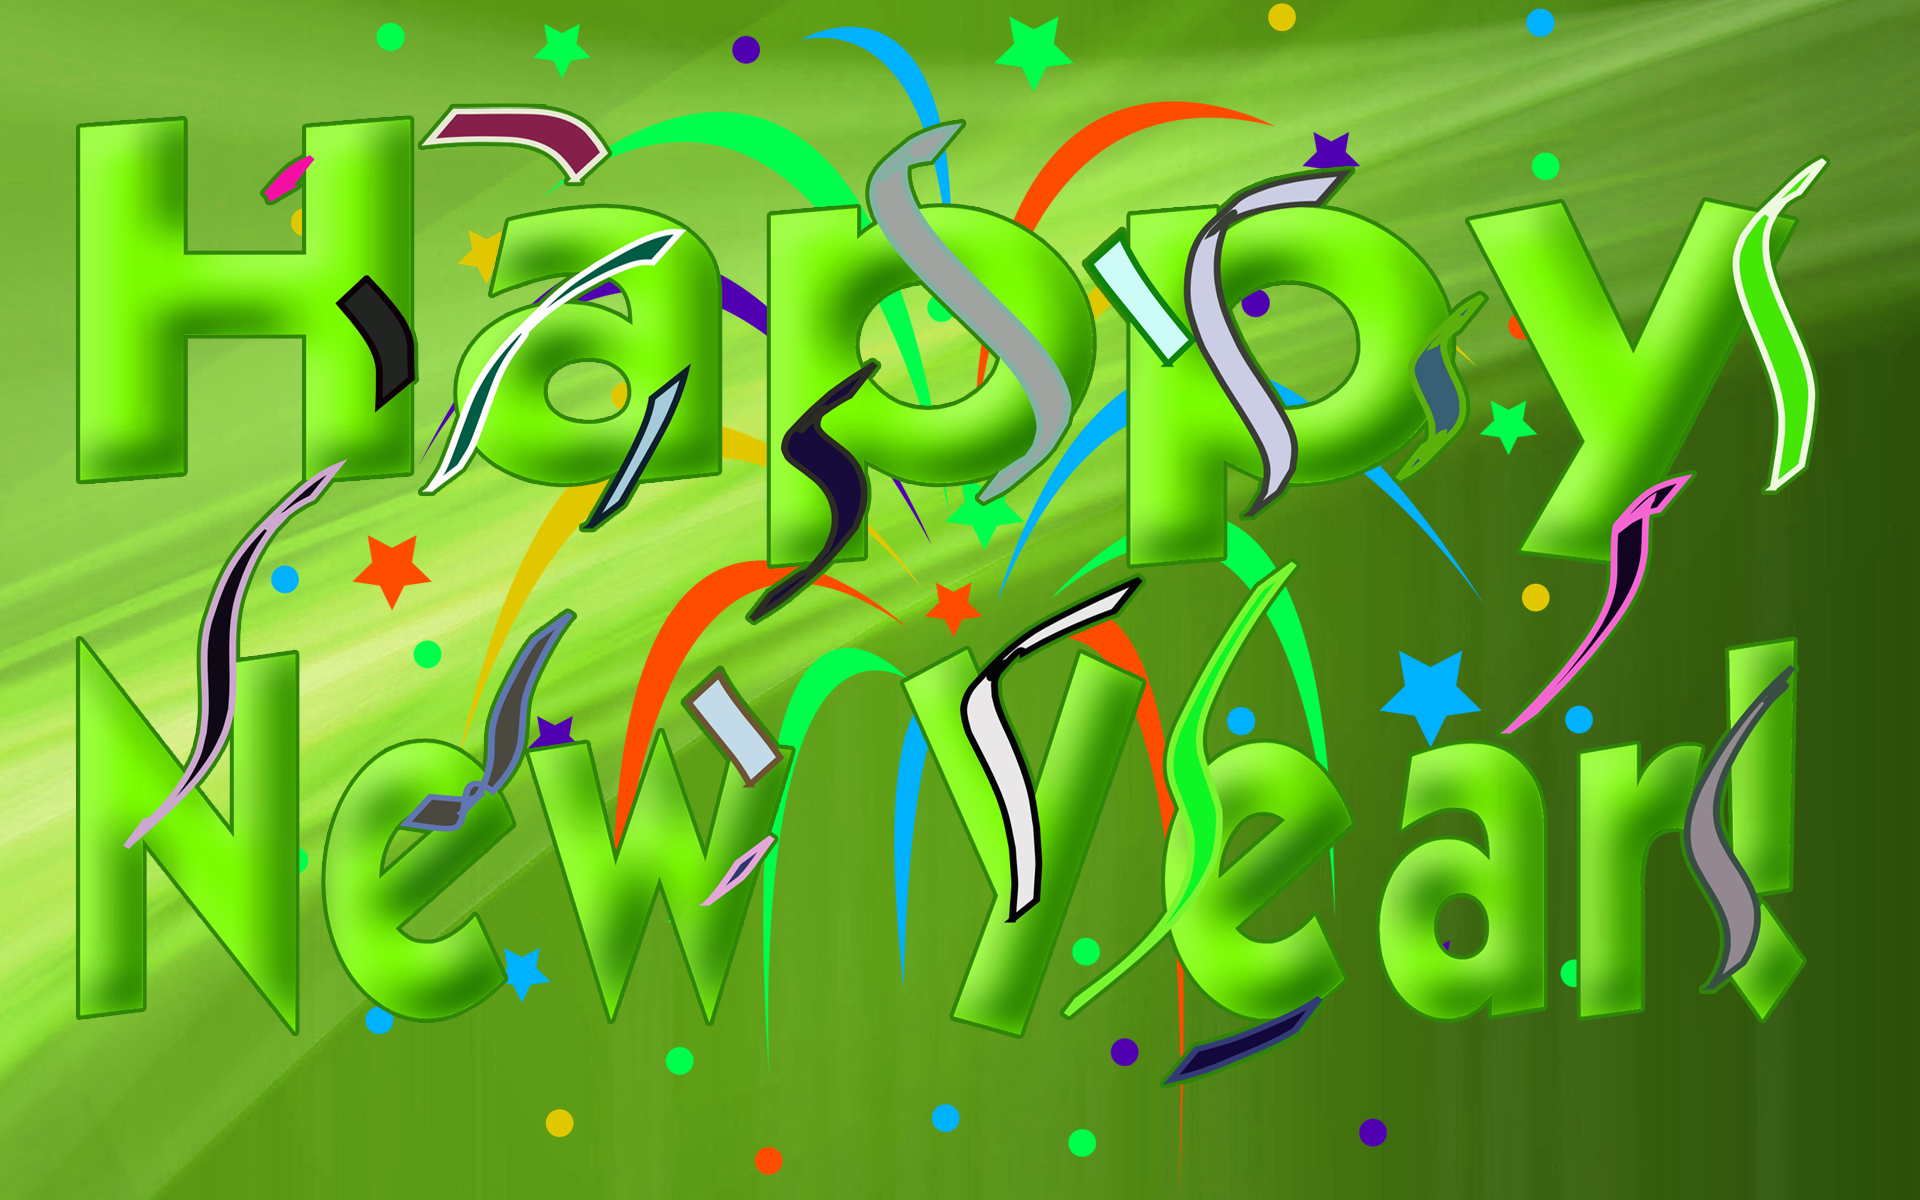 Green Font Happy New Year HD Wallpaper   HD Wallpapers 1920x1200